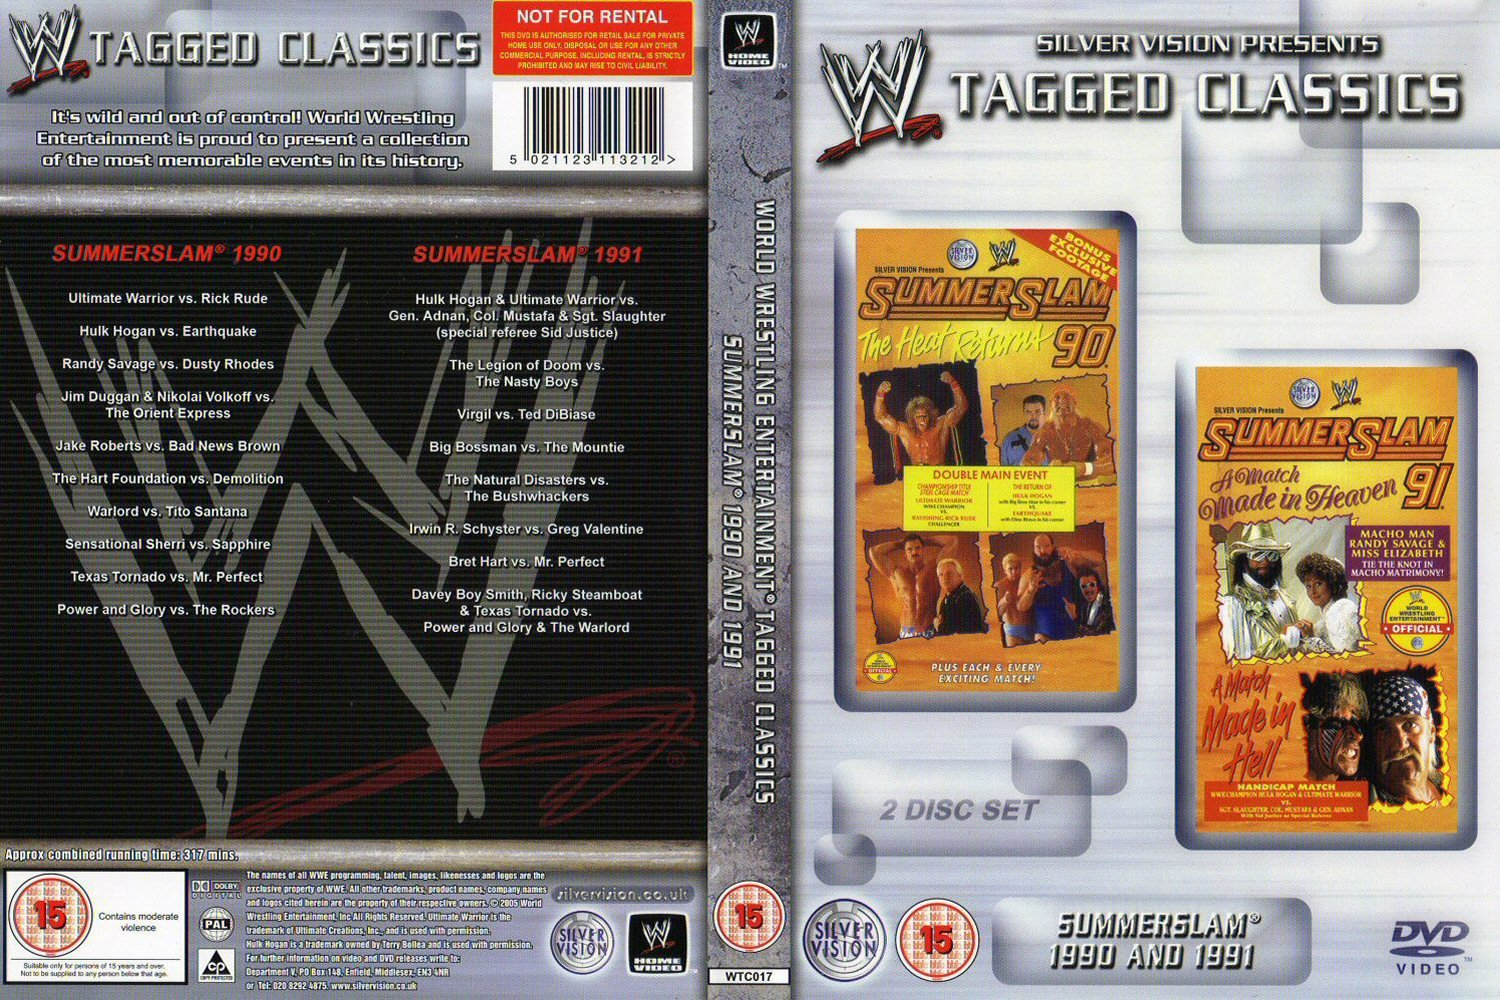 Wwe_Tagged_Classics_Summerslam_90-91_Uk-front